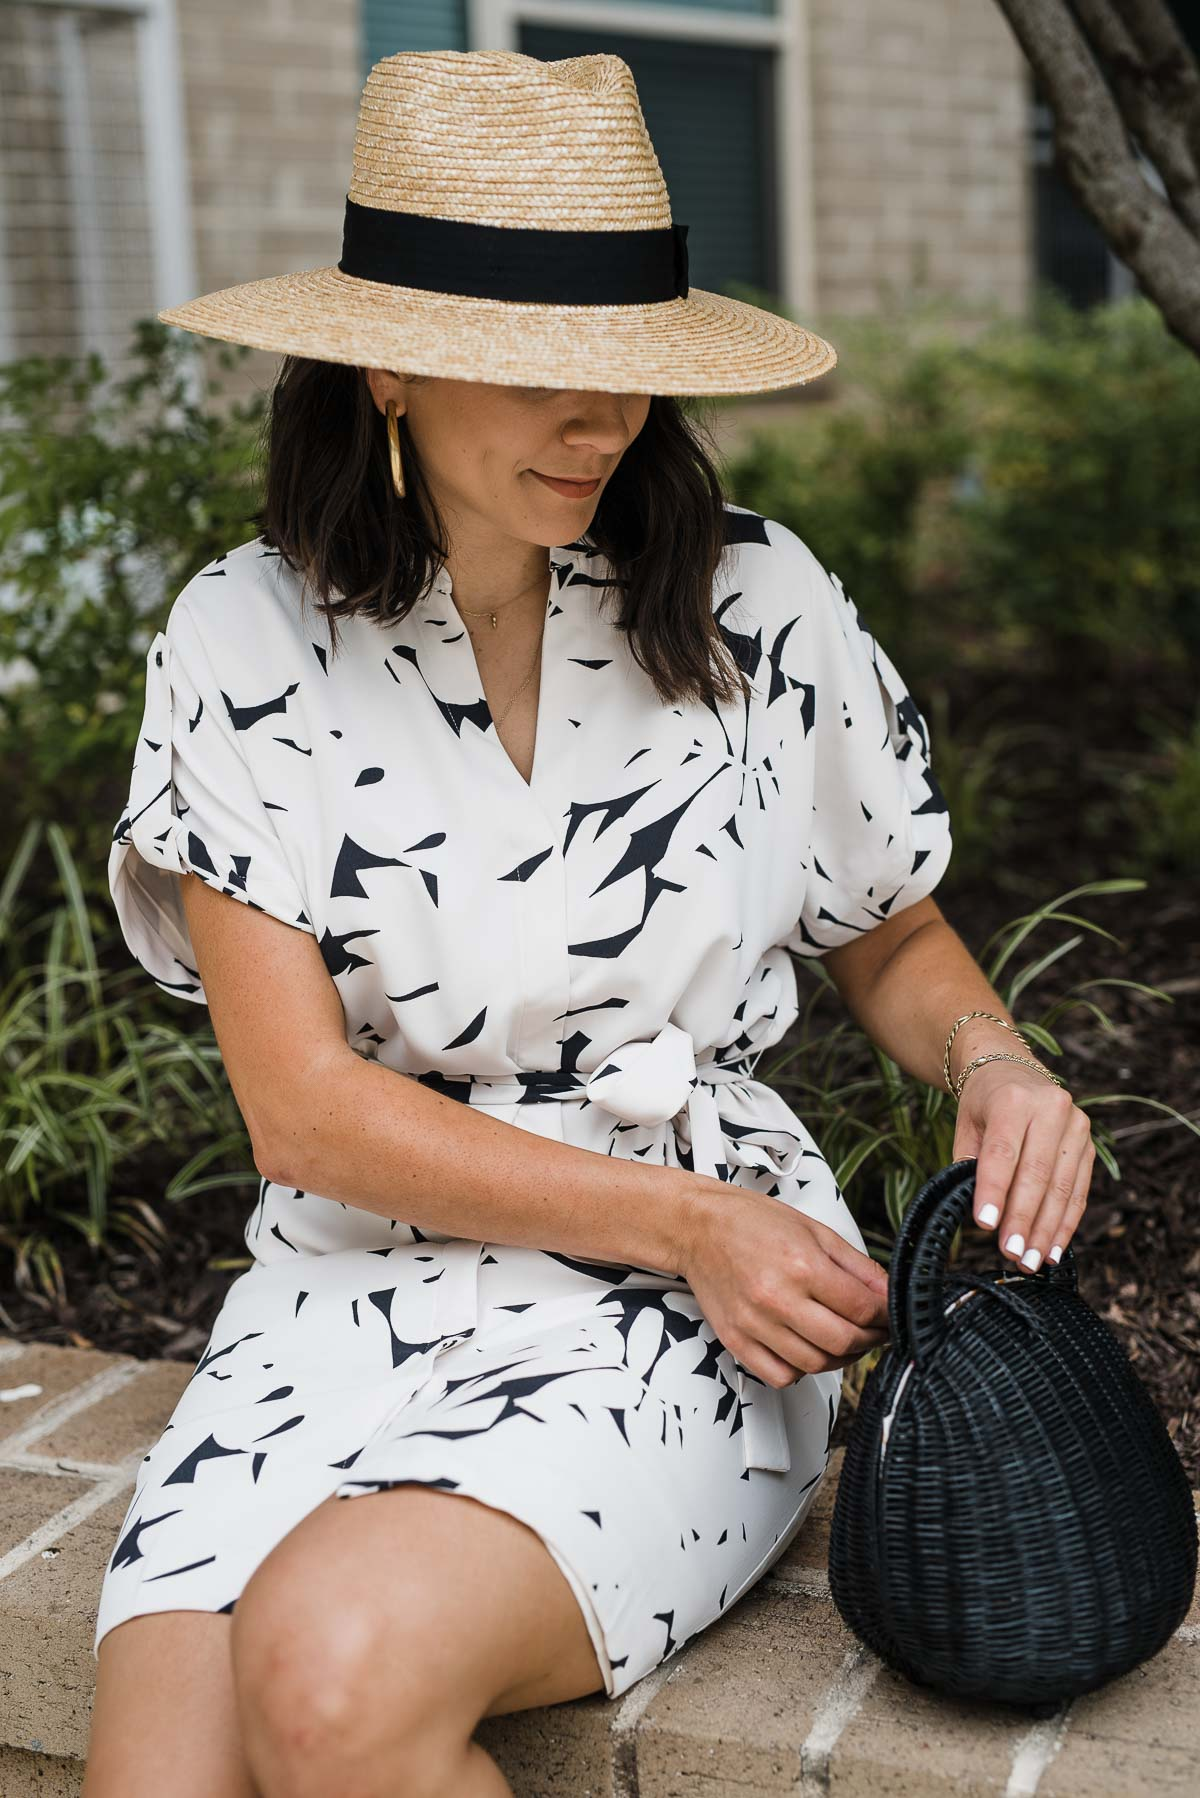 Outfit Details: Ann Taylor Dress, Cult Gaia Bag, Brixton Hat, Greece Sandals by My Style Vita